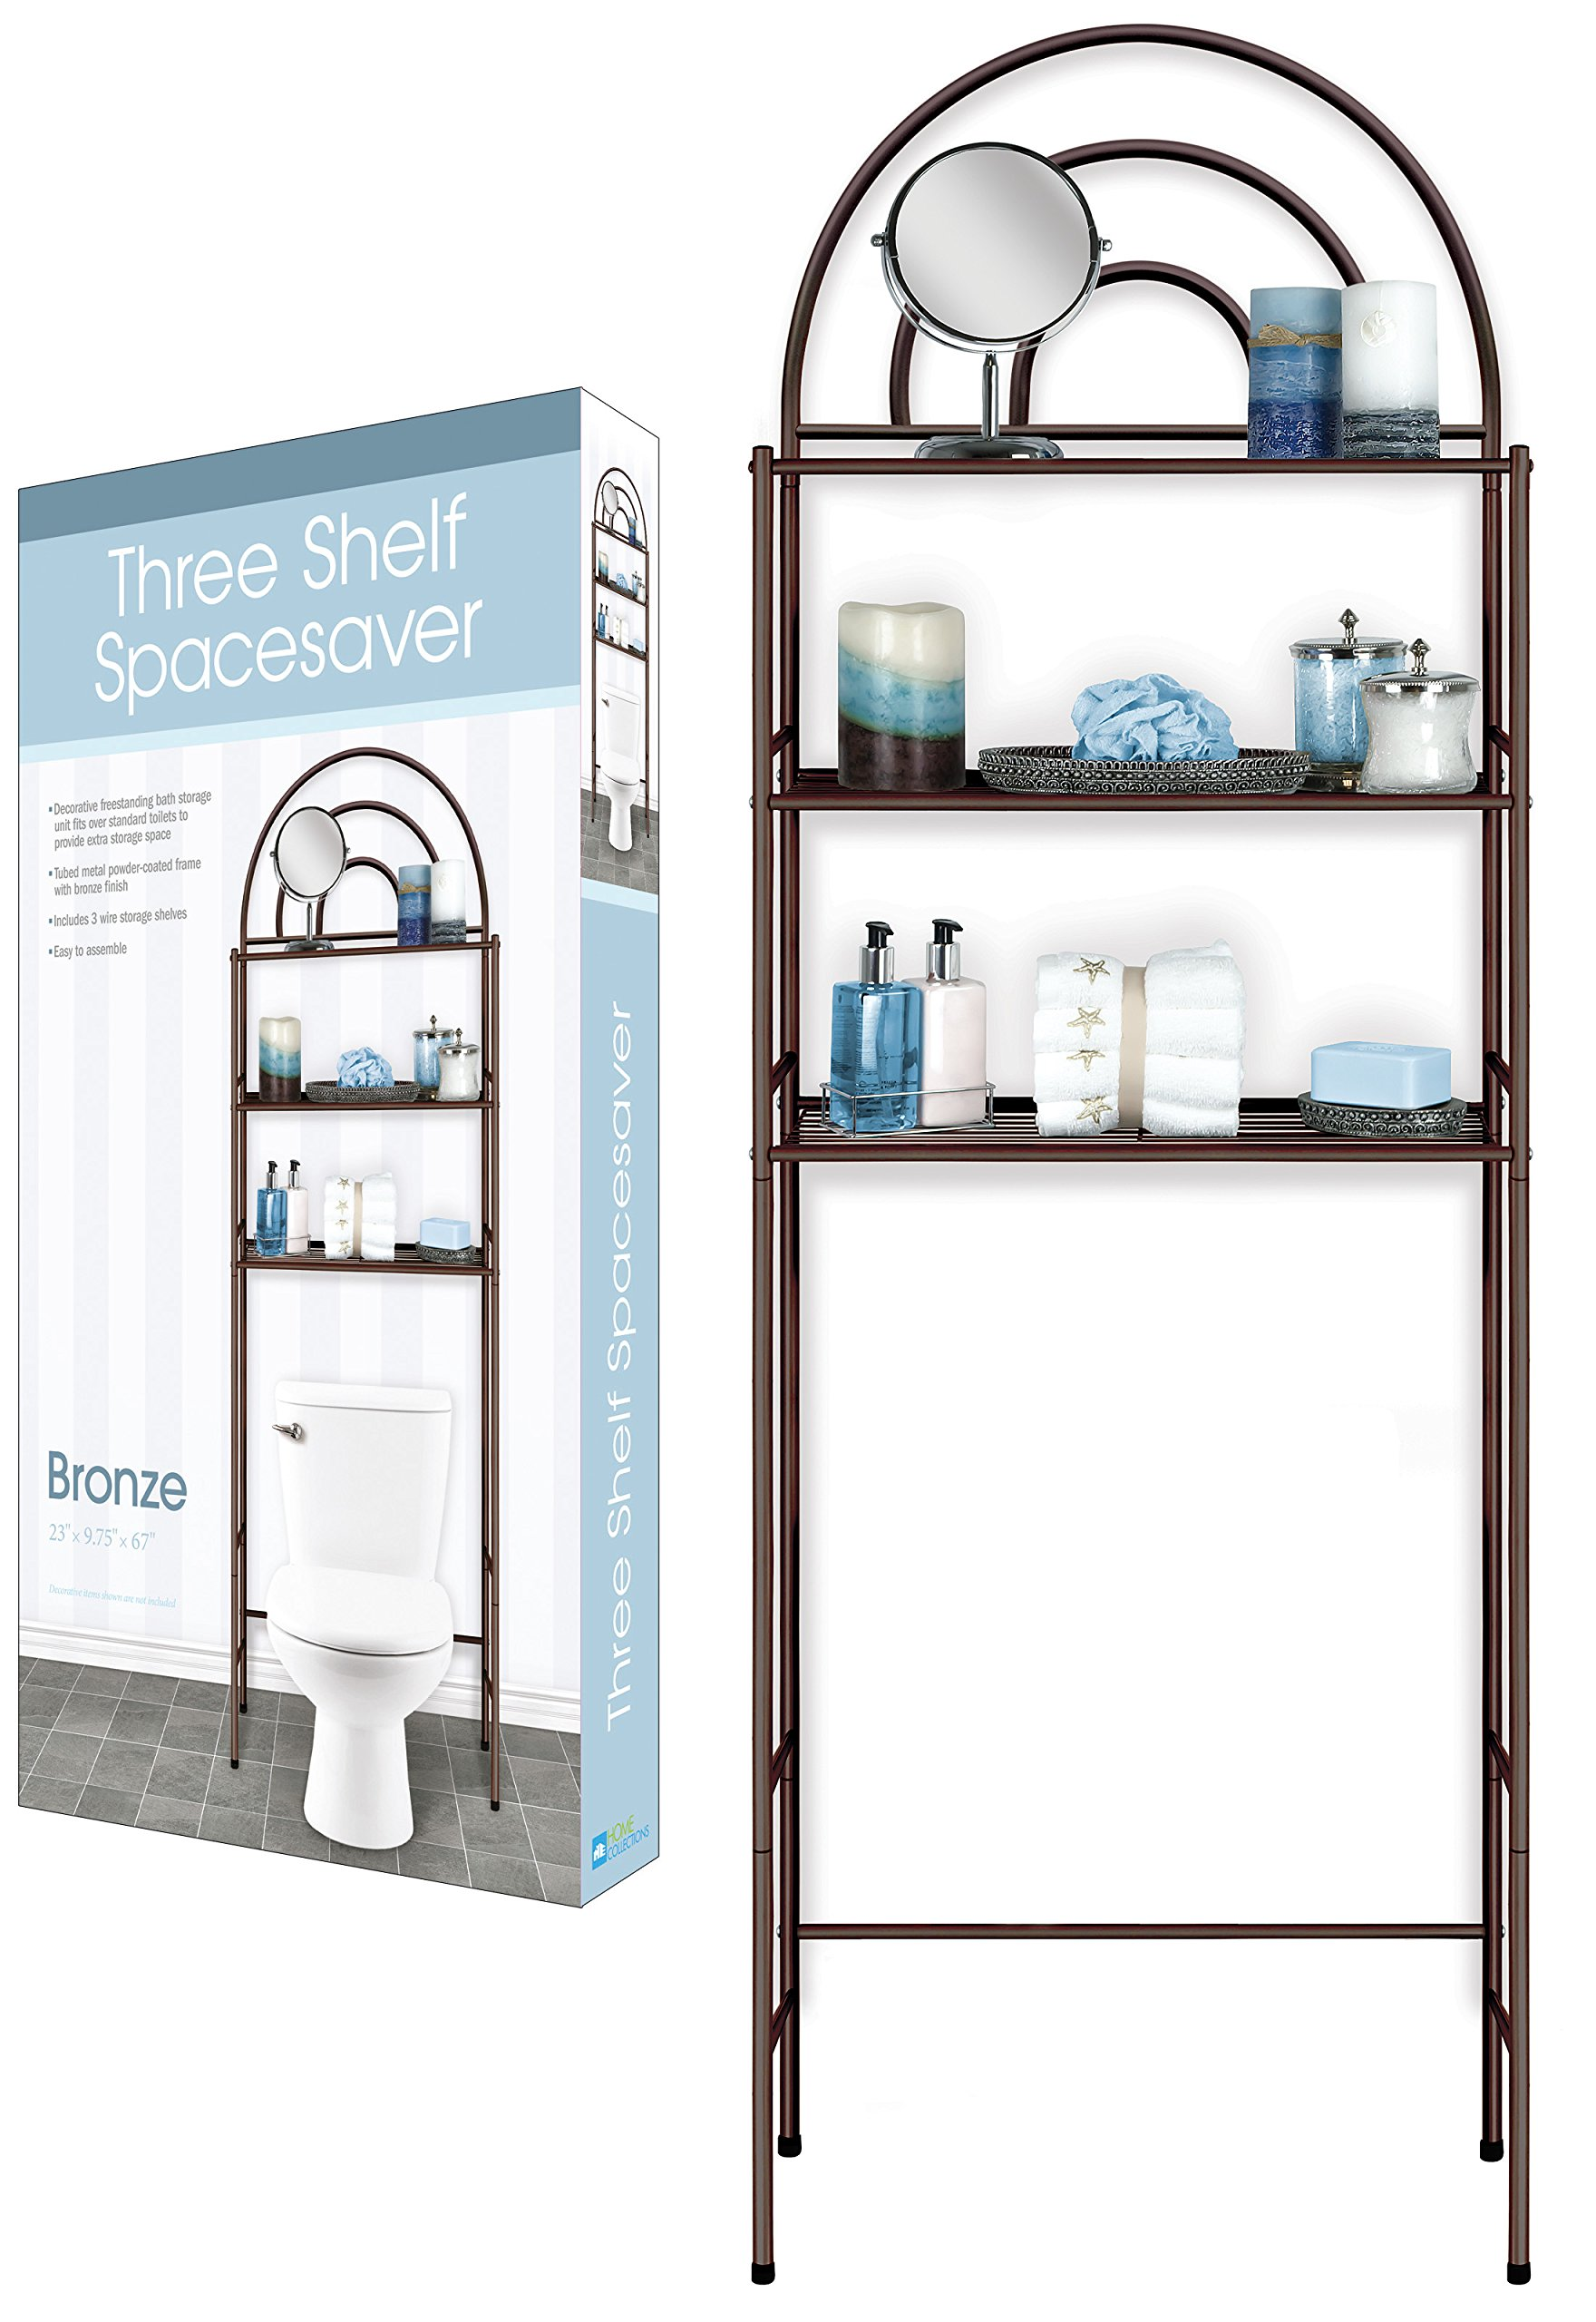 DINY Home Collections 3 Shelf Over The Toilet Spacesaver Easy to Assemble Bronze Metal